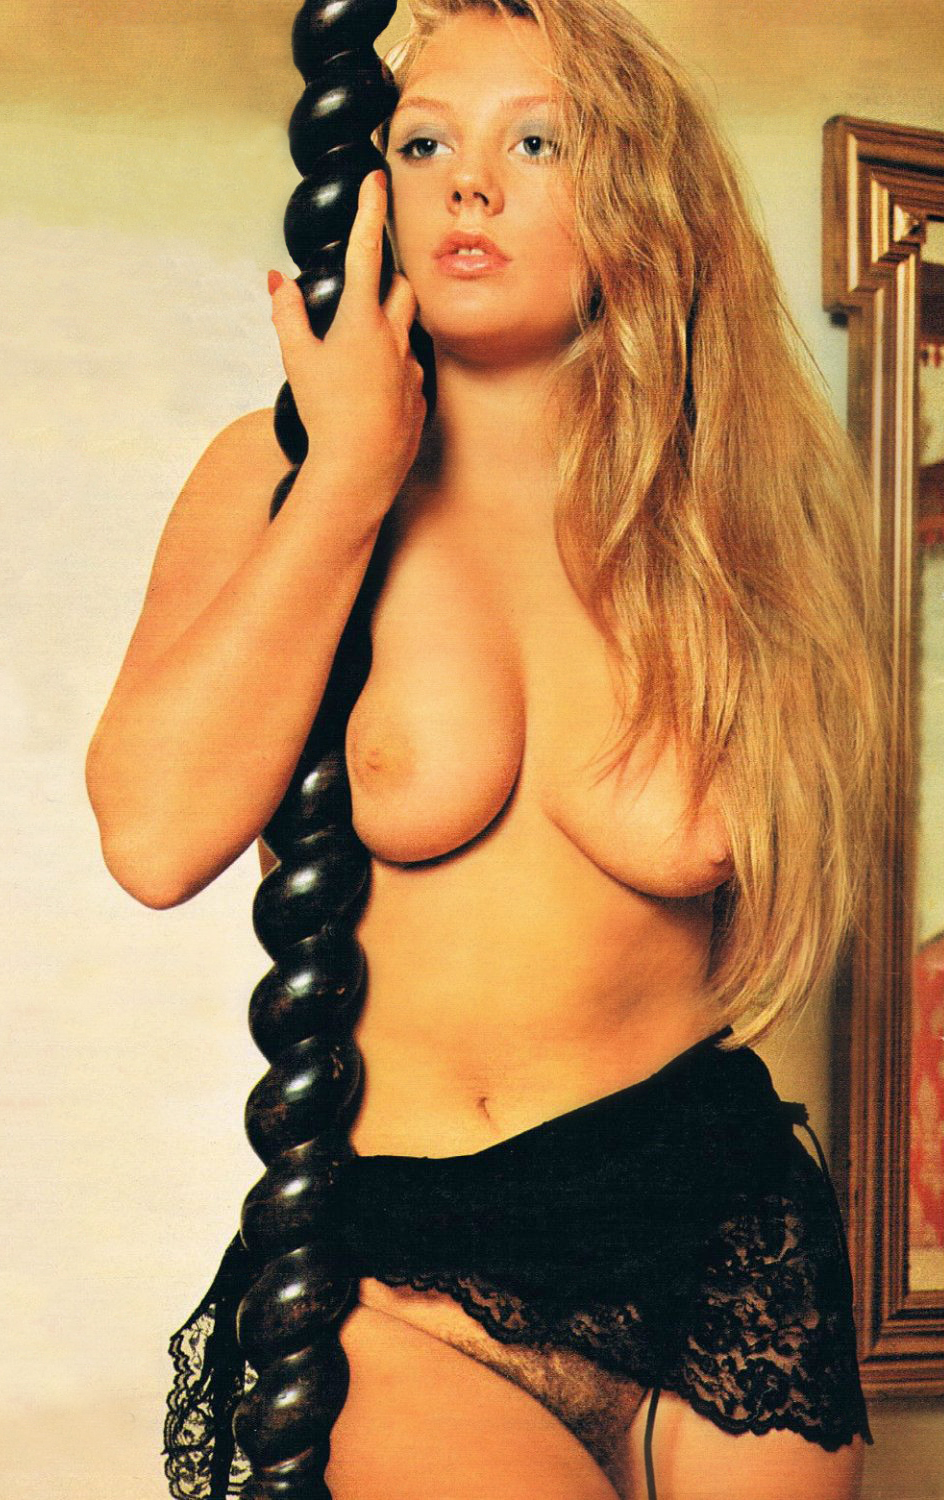 Rosemary-Henson-Deutsche-Sex-Illustrierte-1976